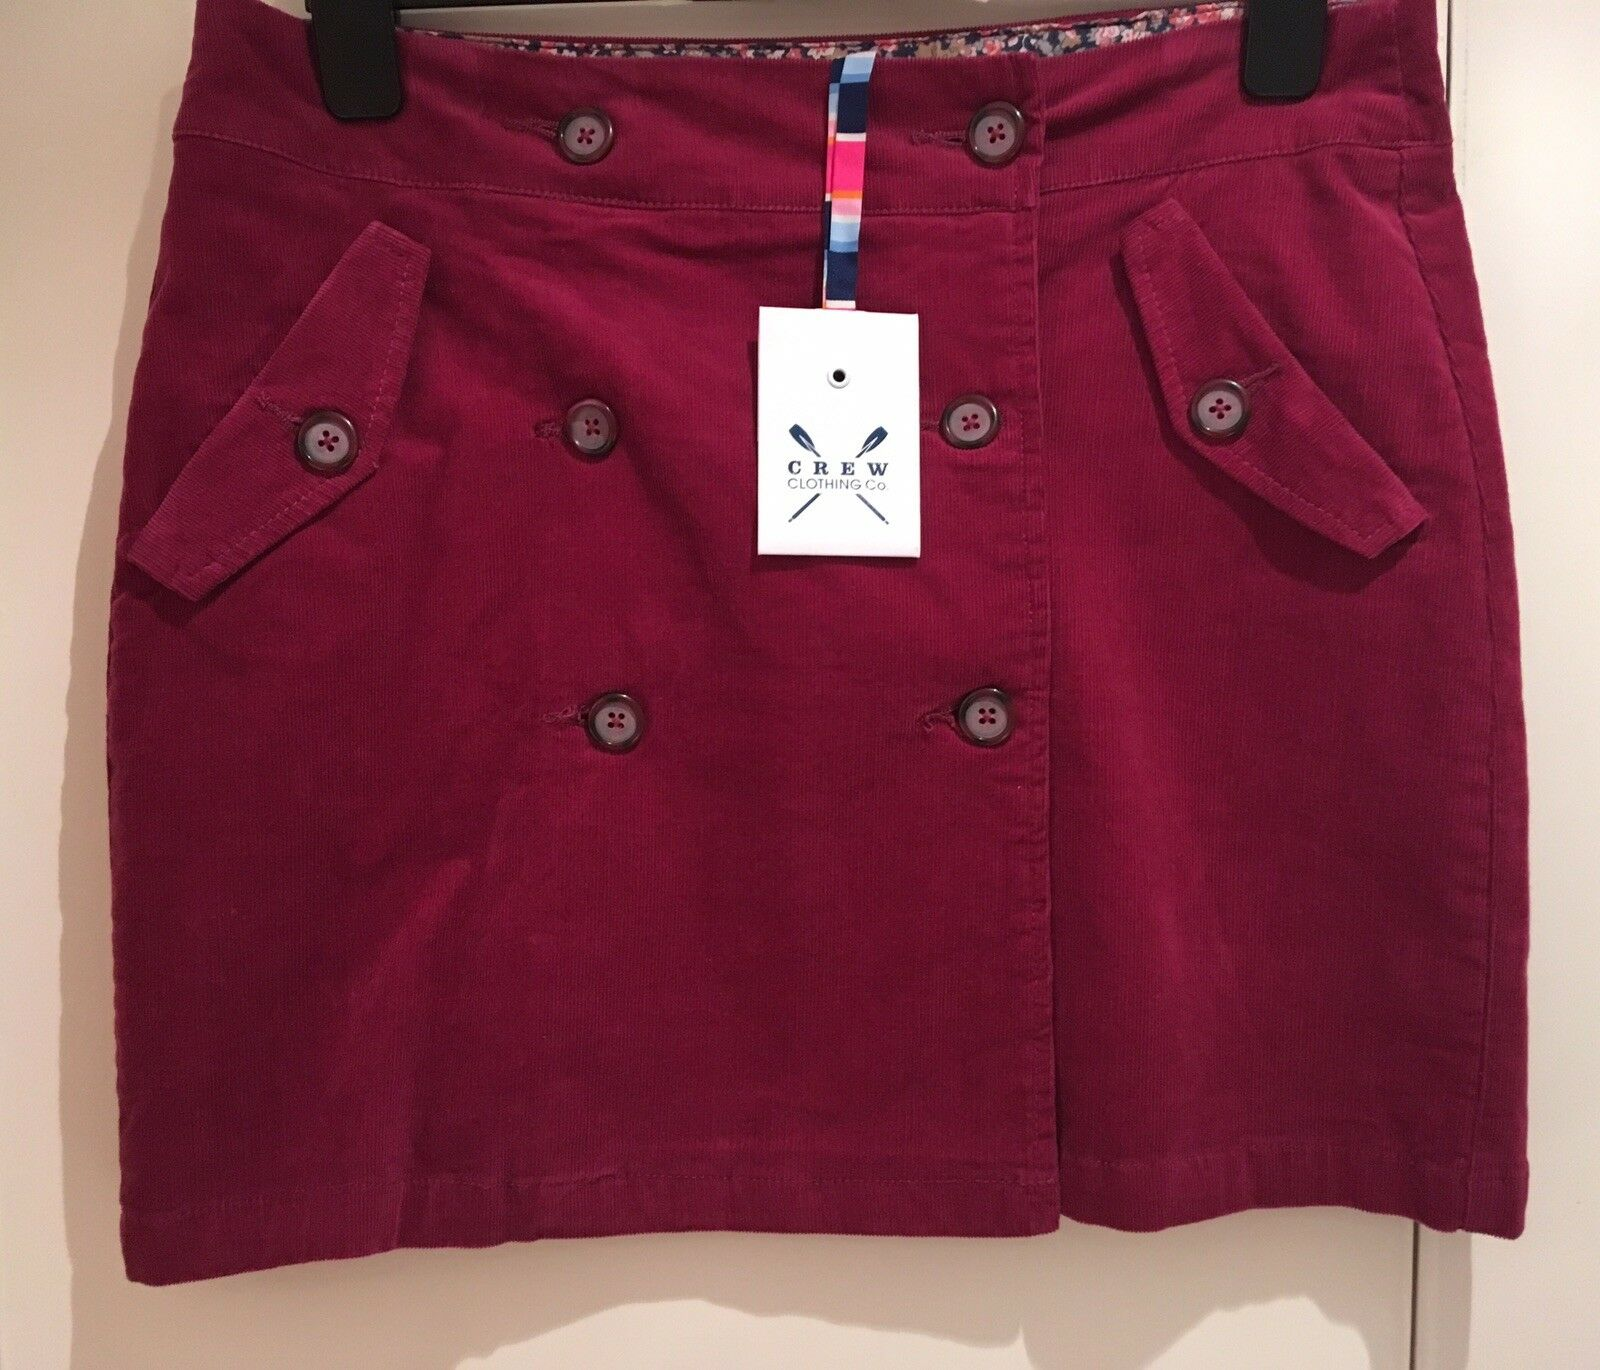 Crew Clothing Co. Judita Raspberry Cotton Cord  Skirt UK Size 12 BNWT